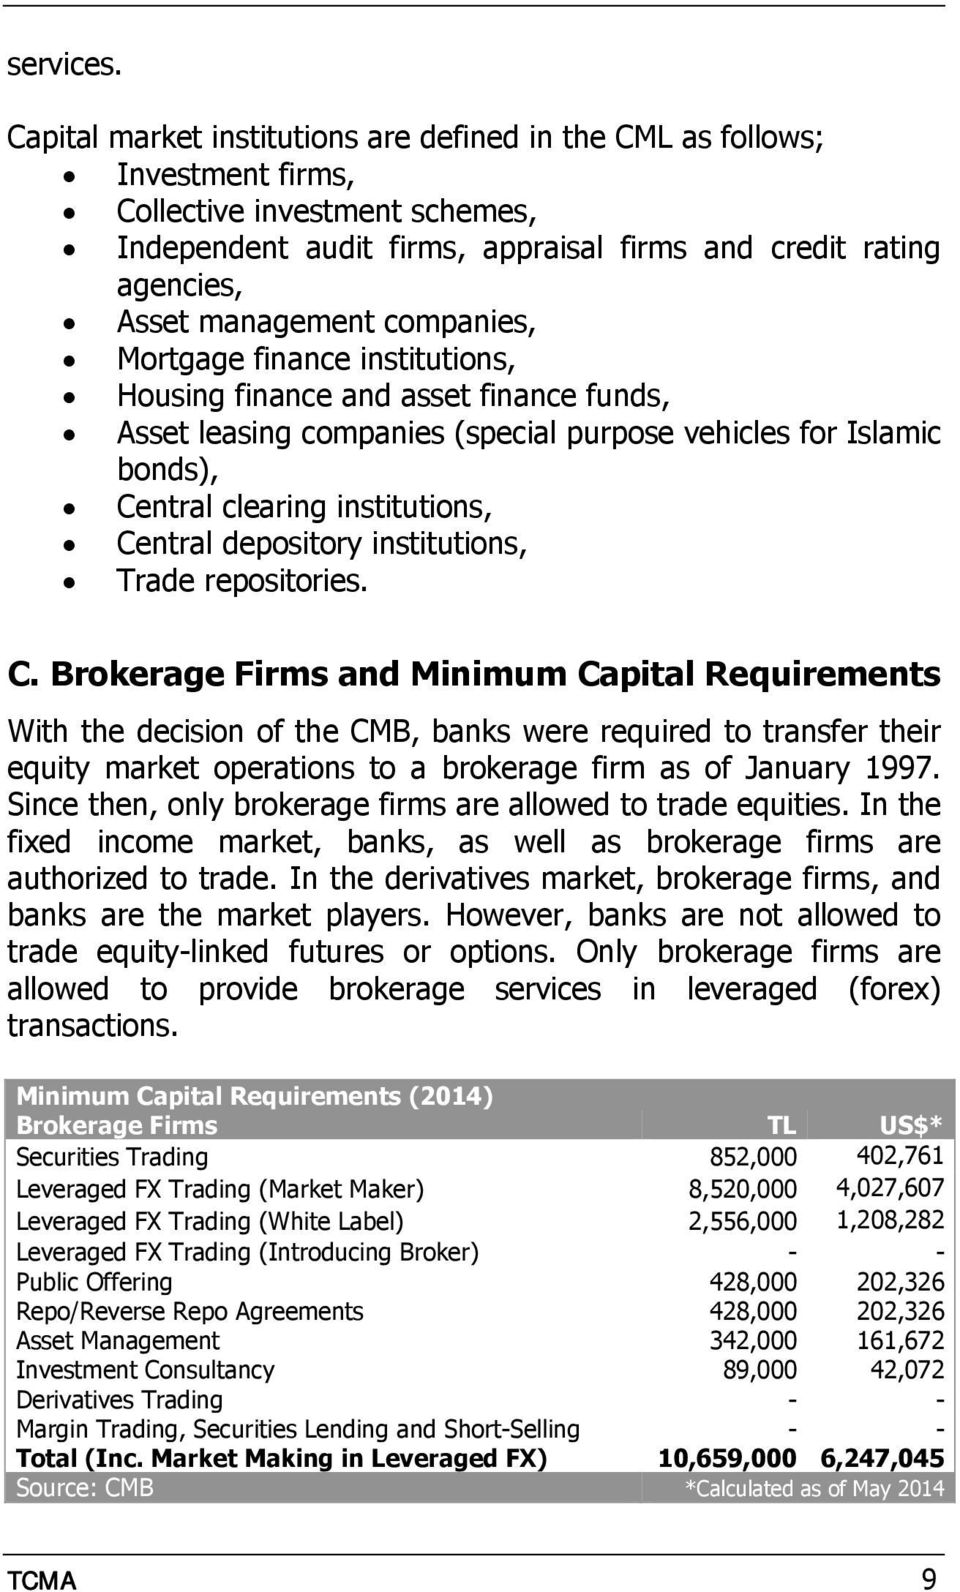 companies, Mortgage finance institutions, Housing finance and asset finance funds, Asset leasing companies (special purpose vehicles for Islamic bonds), Central clearing institutions, Central